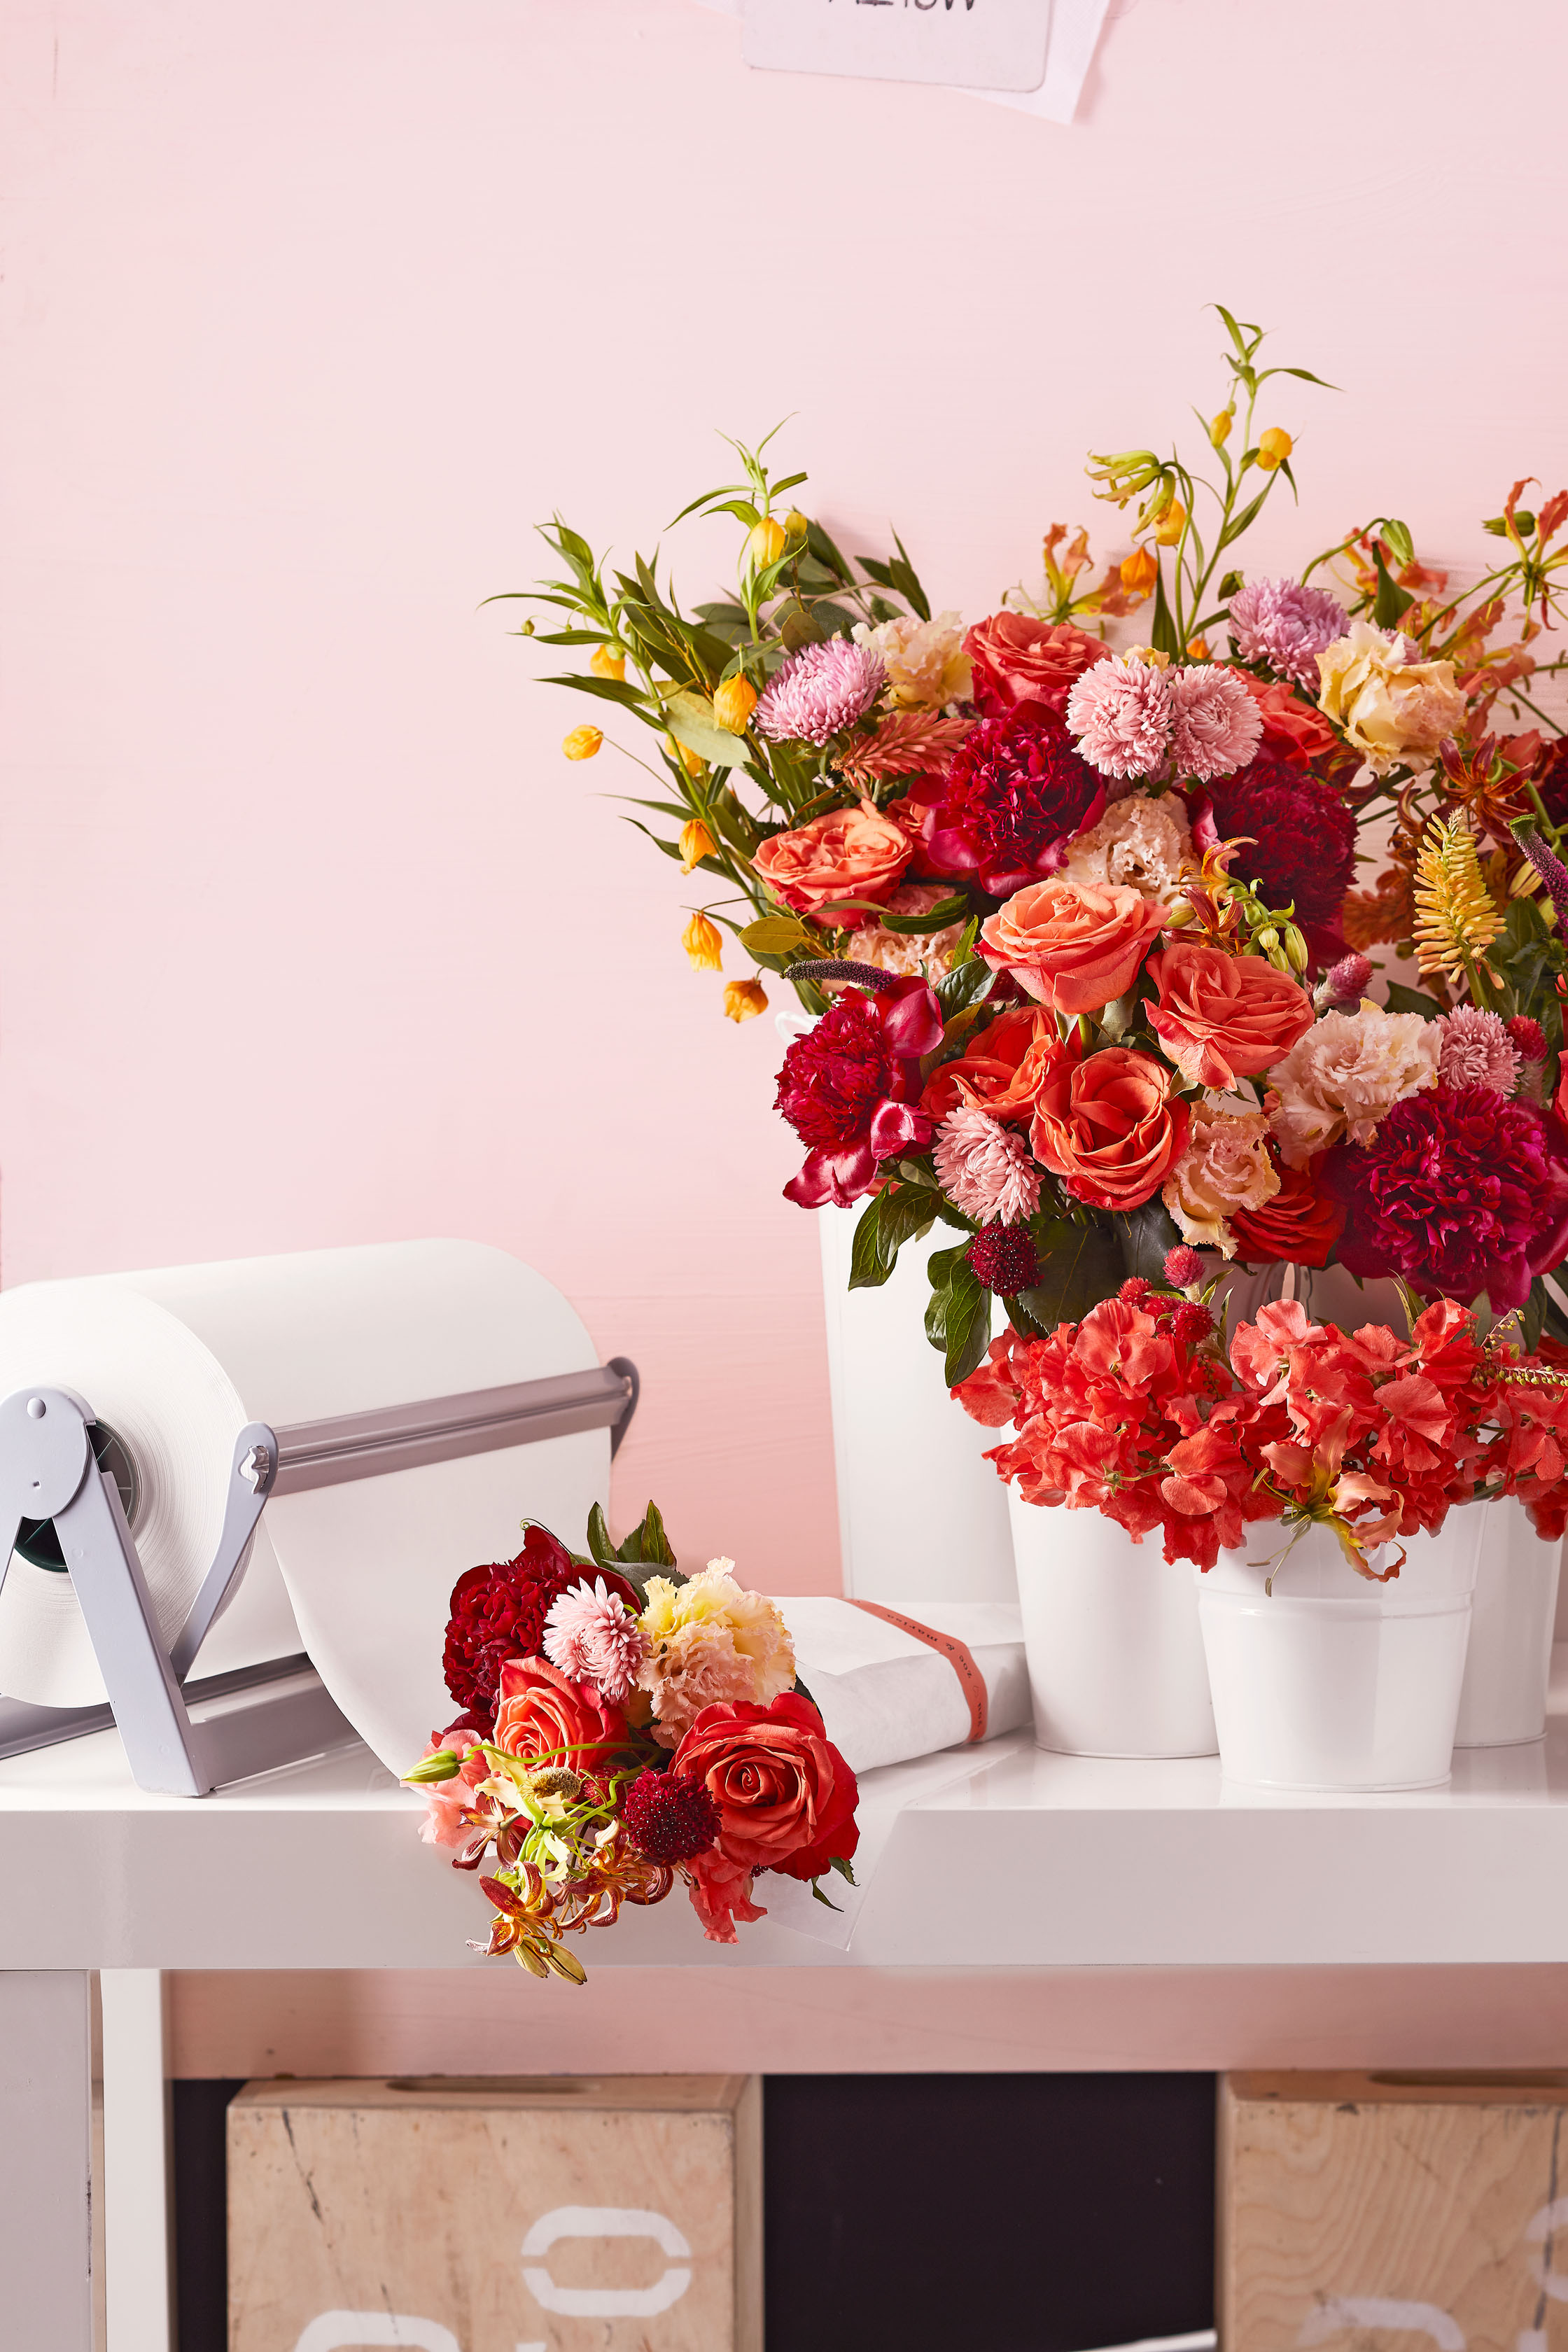 Here's How to Turn Your Wedding Flowers Into Favors